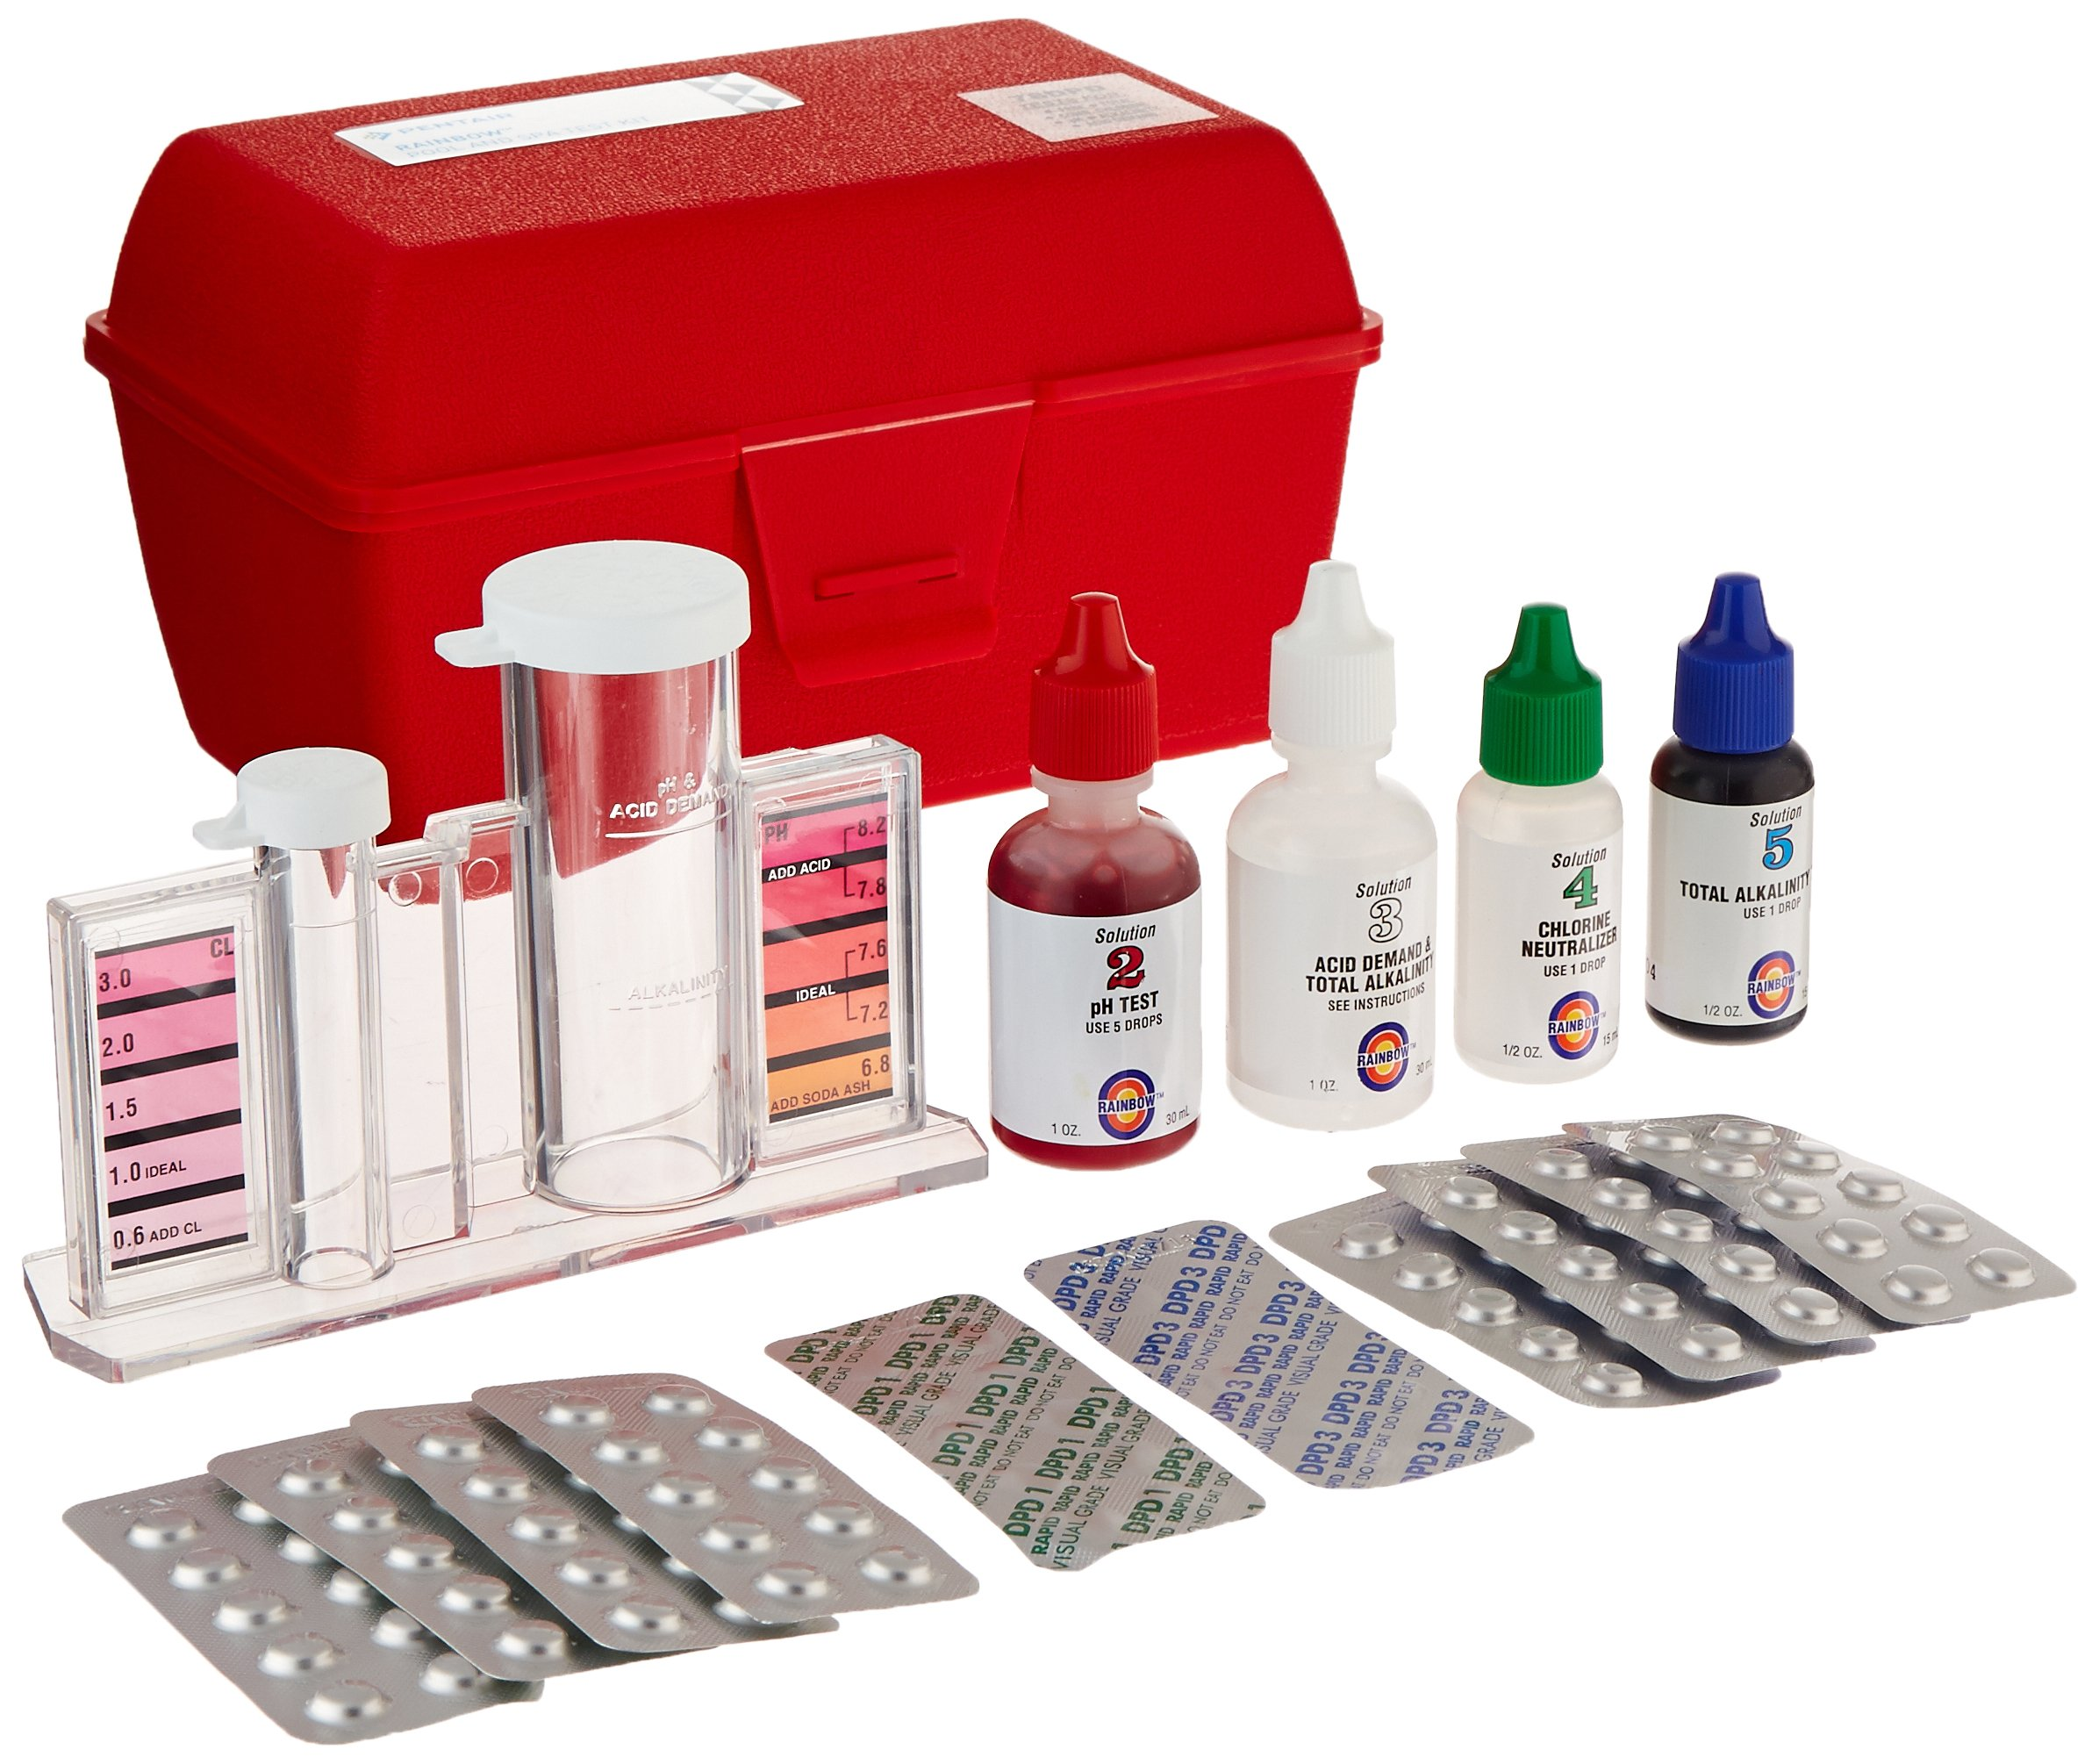 Pentair R151246 78DPD All-in-One DPD Test Kit by Pentair